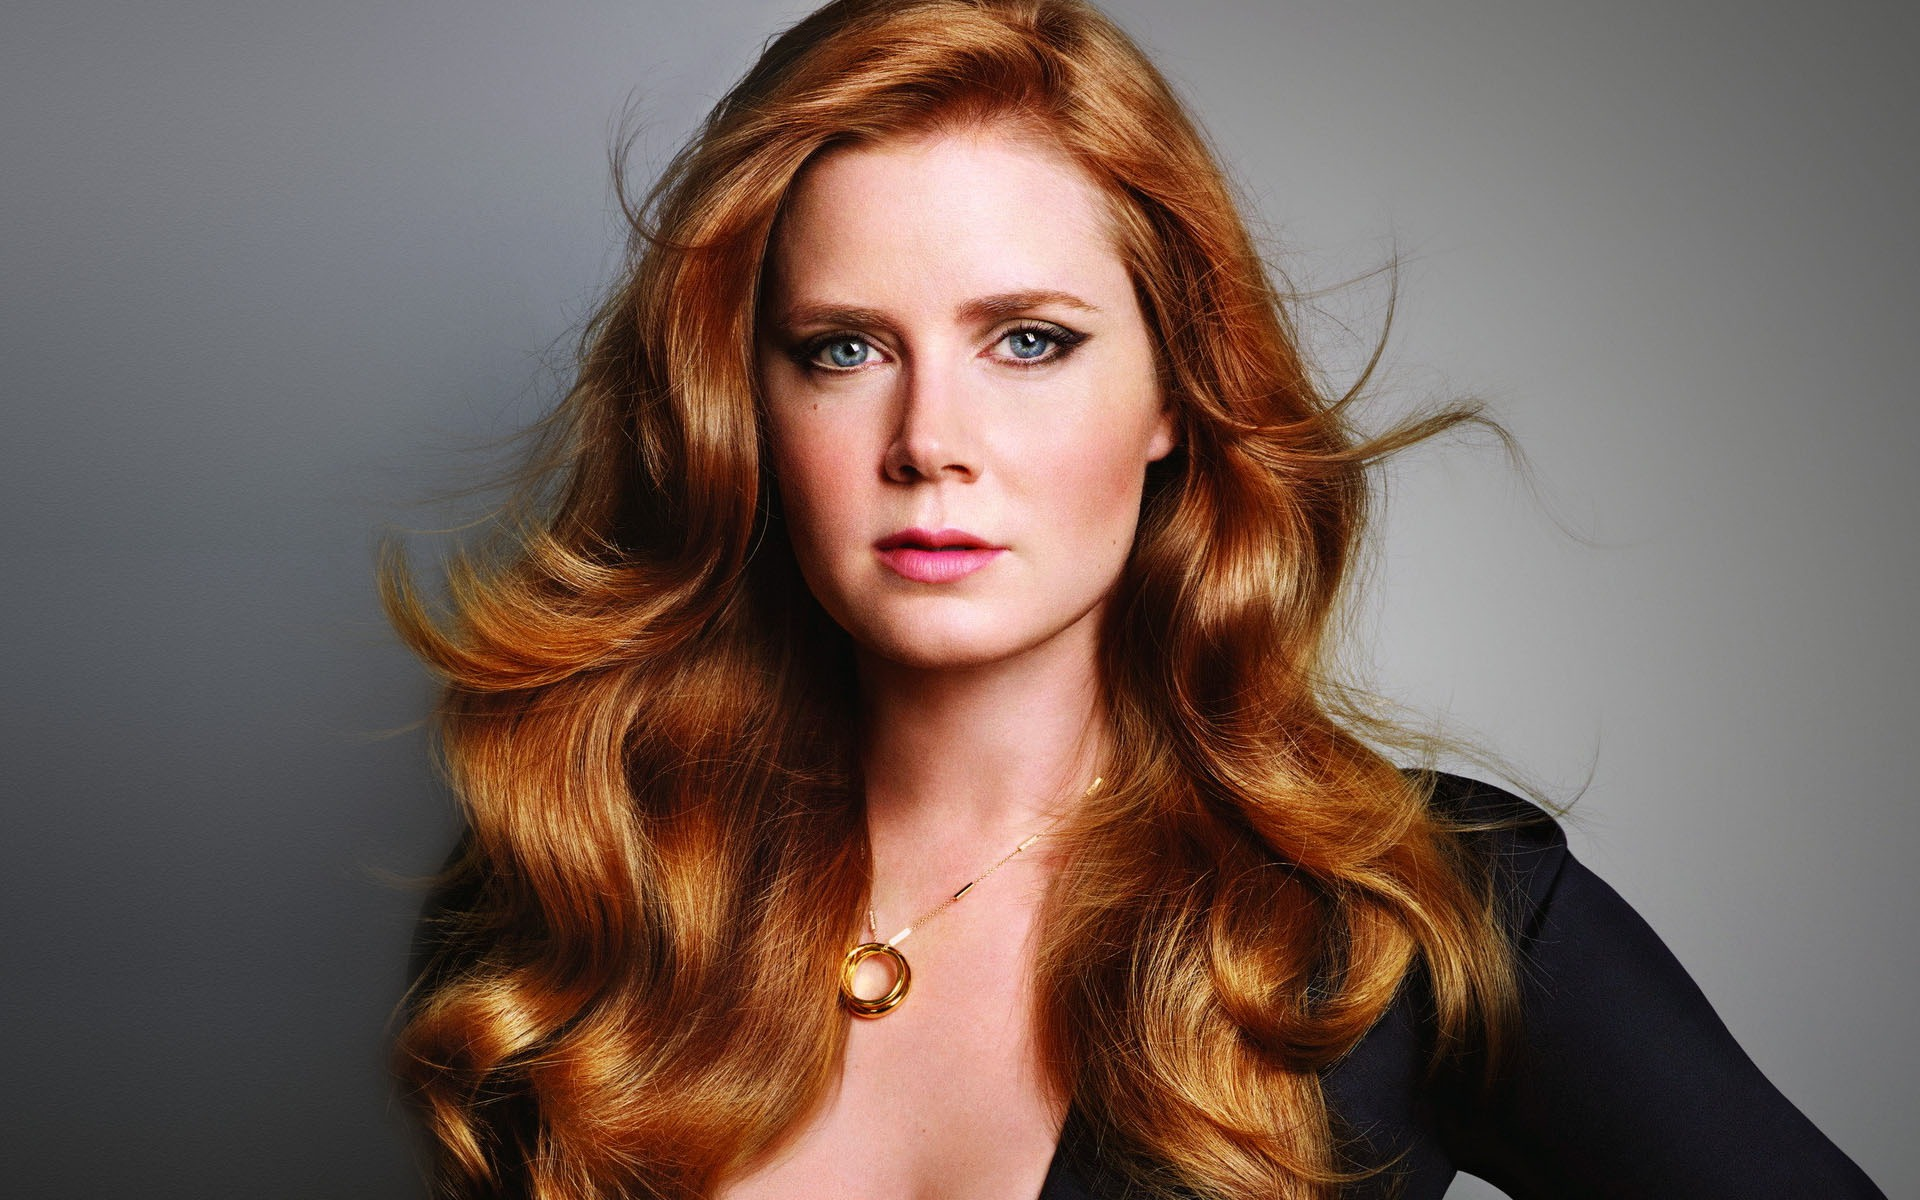 Lovely Amy Adams Beautiful Look Still Free Mobile Download Background Images Hd